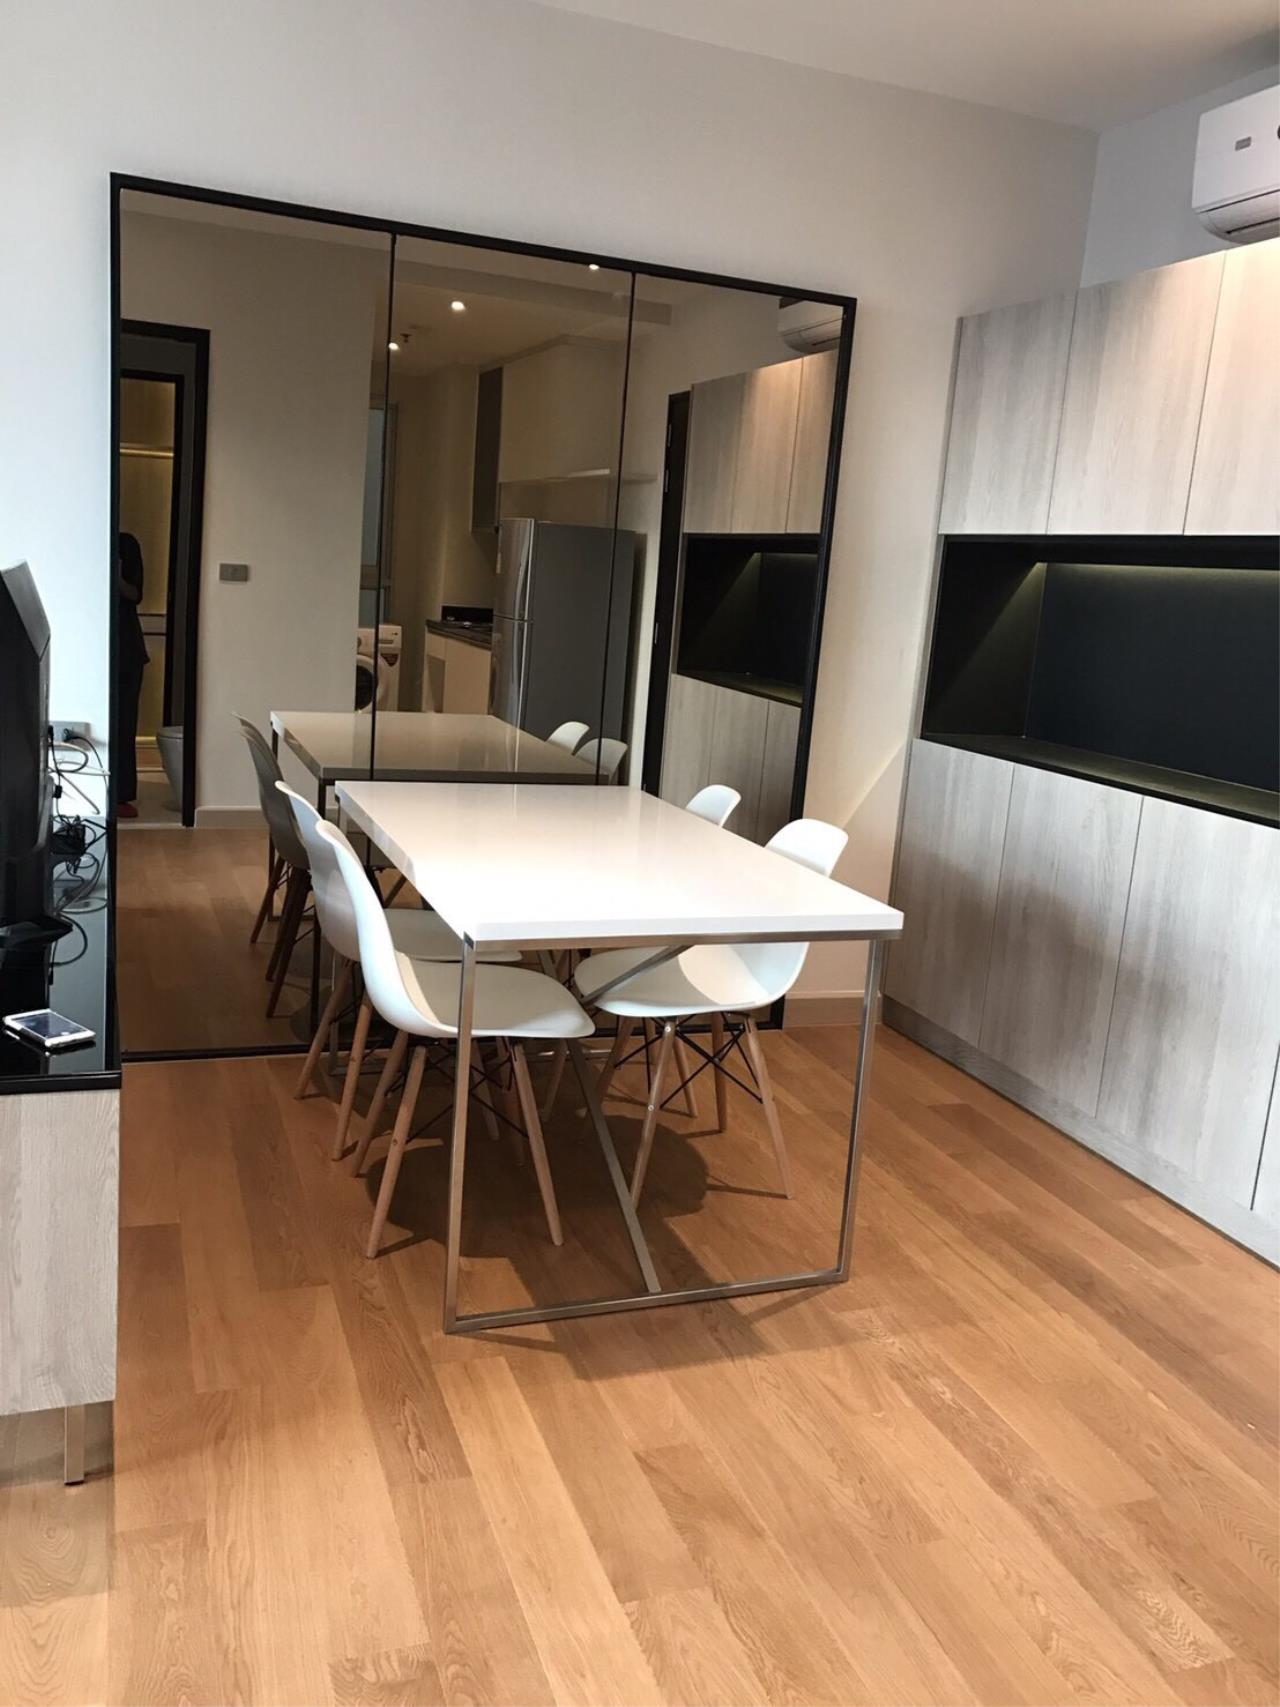 RE/MAX All Star Realty Agency's Skywalk Beautiful One Bed 53sqm rent 35k only (BTS Phra Khanong) 6